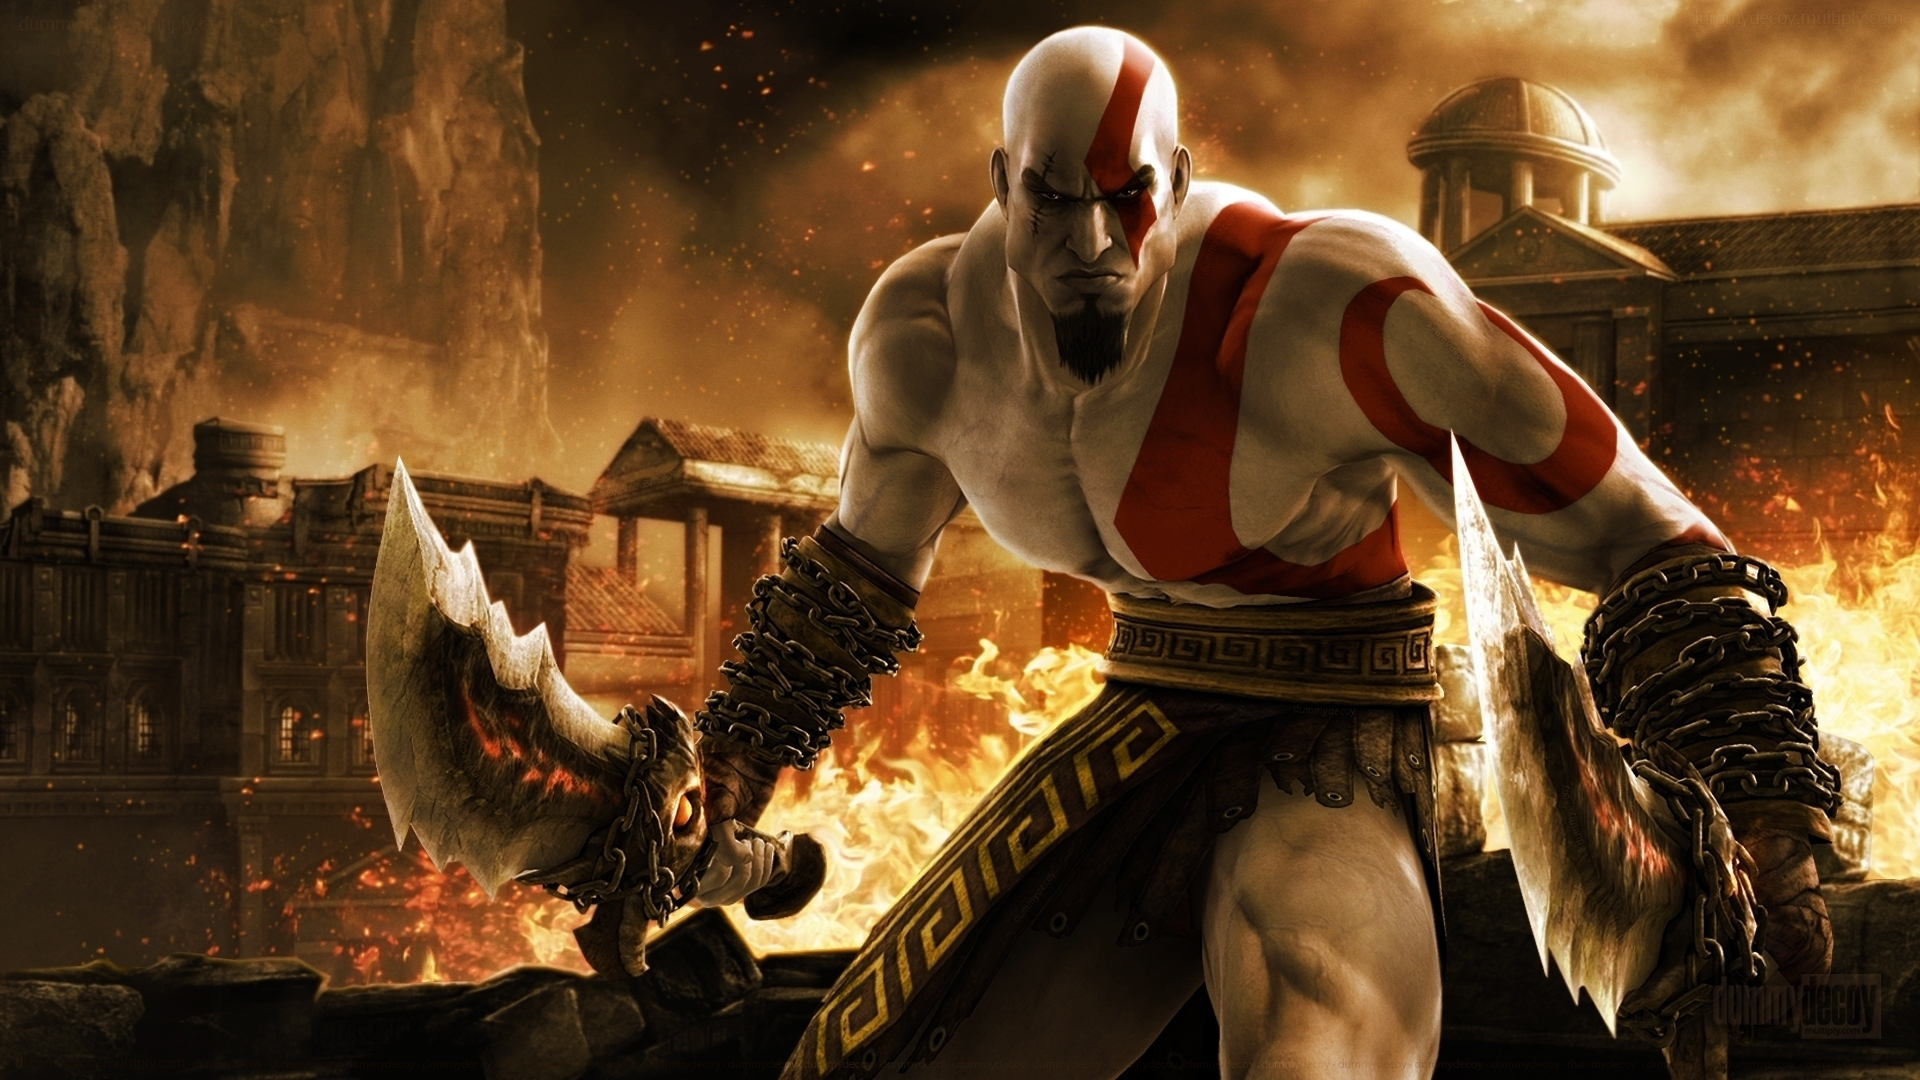 Kratos 4k Wallpapers For Your Desktop Or Mobile Screen Free